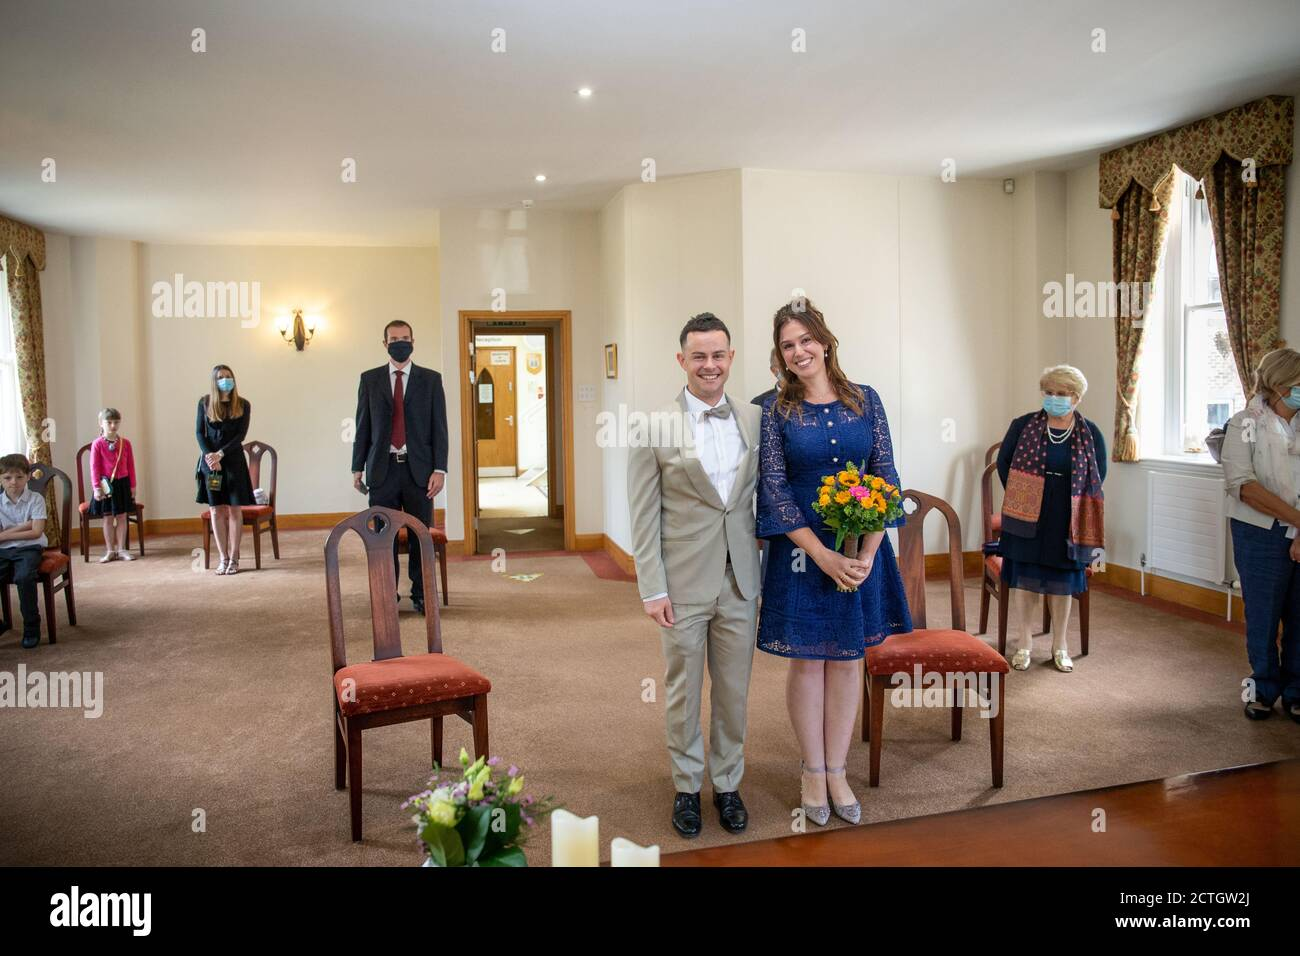 Couple getting married at St Albans Register Office during Coronavirus / Covid-19 pandemic 2020. With guests wearing face masks and face coverings Stock Photo